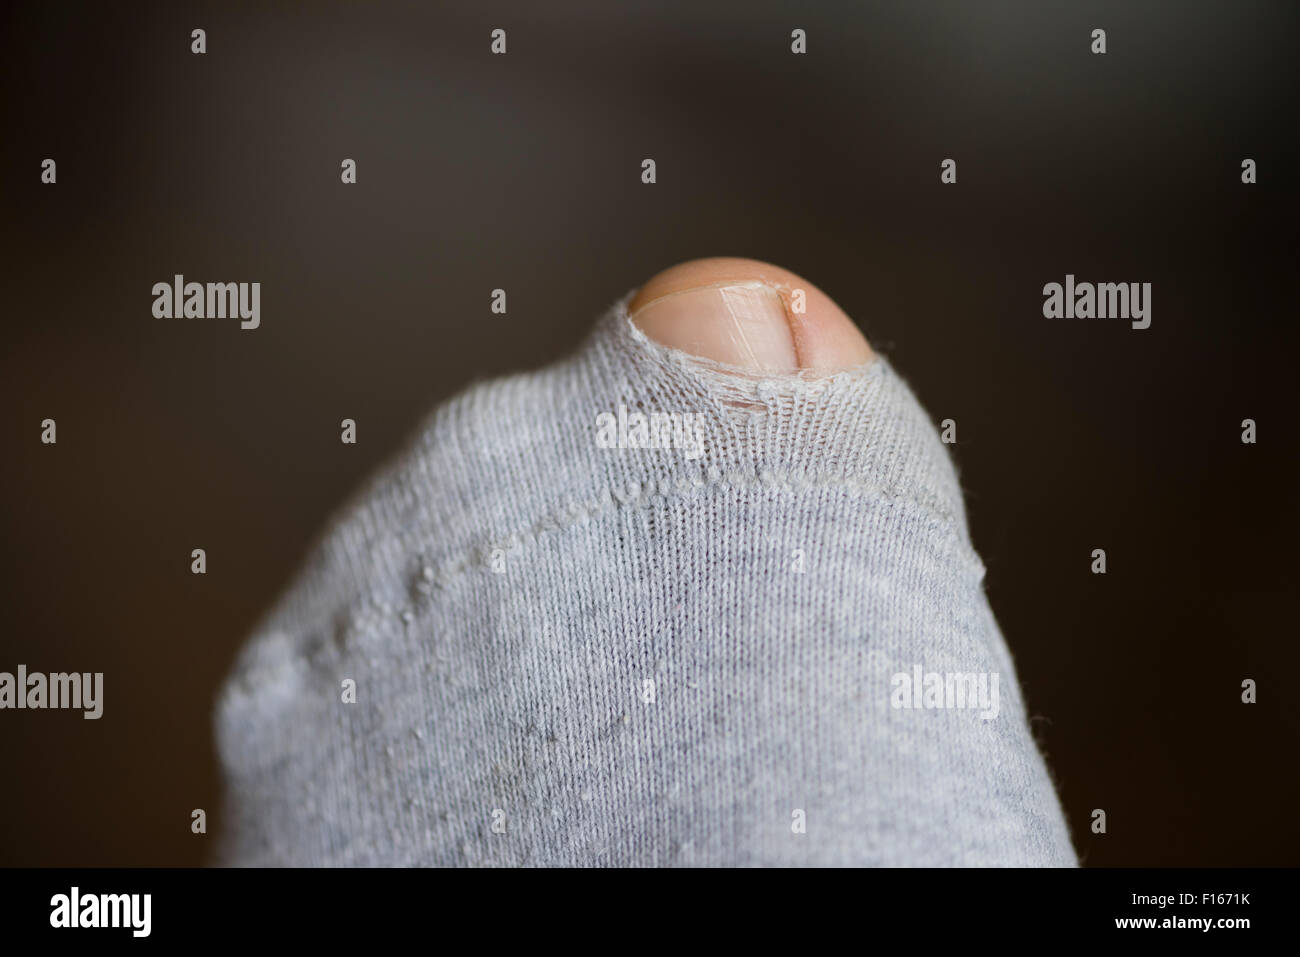 Big Toe of left foot coming through a little hole in a torn sock made of grey cotton - Stock Image